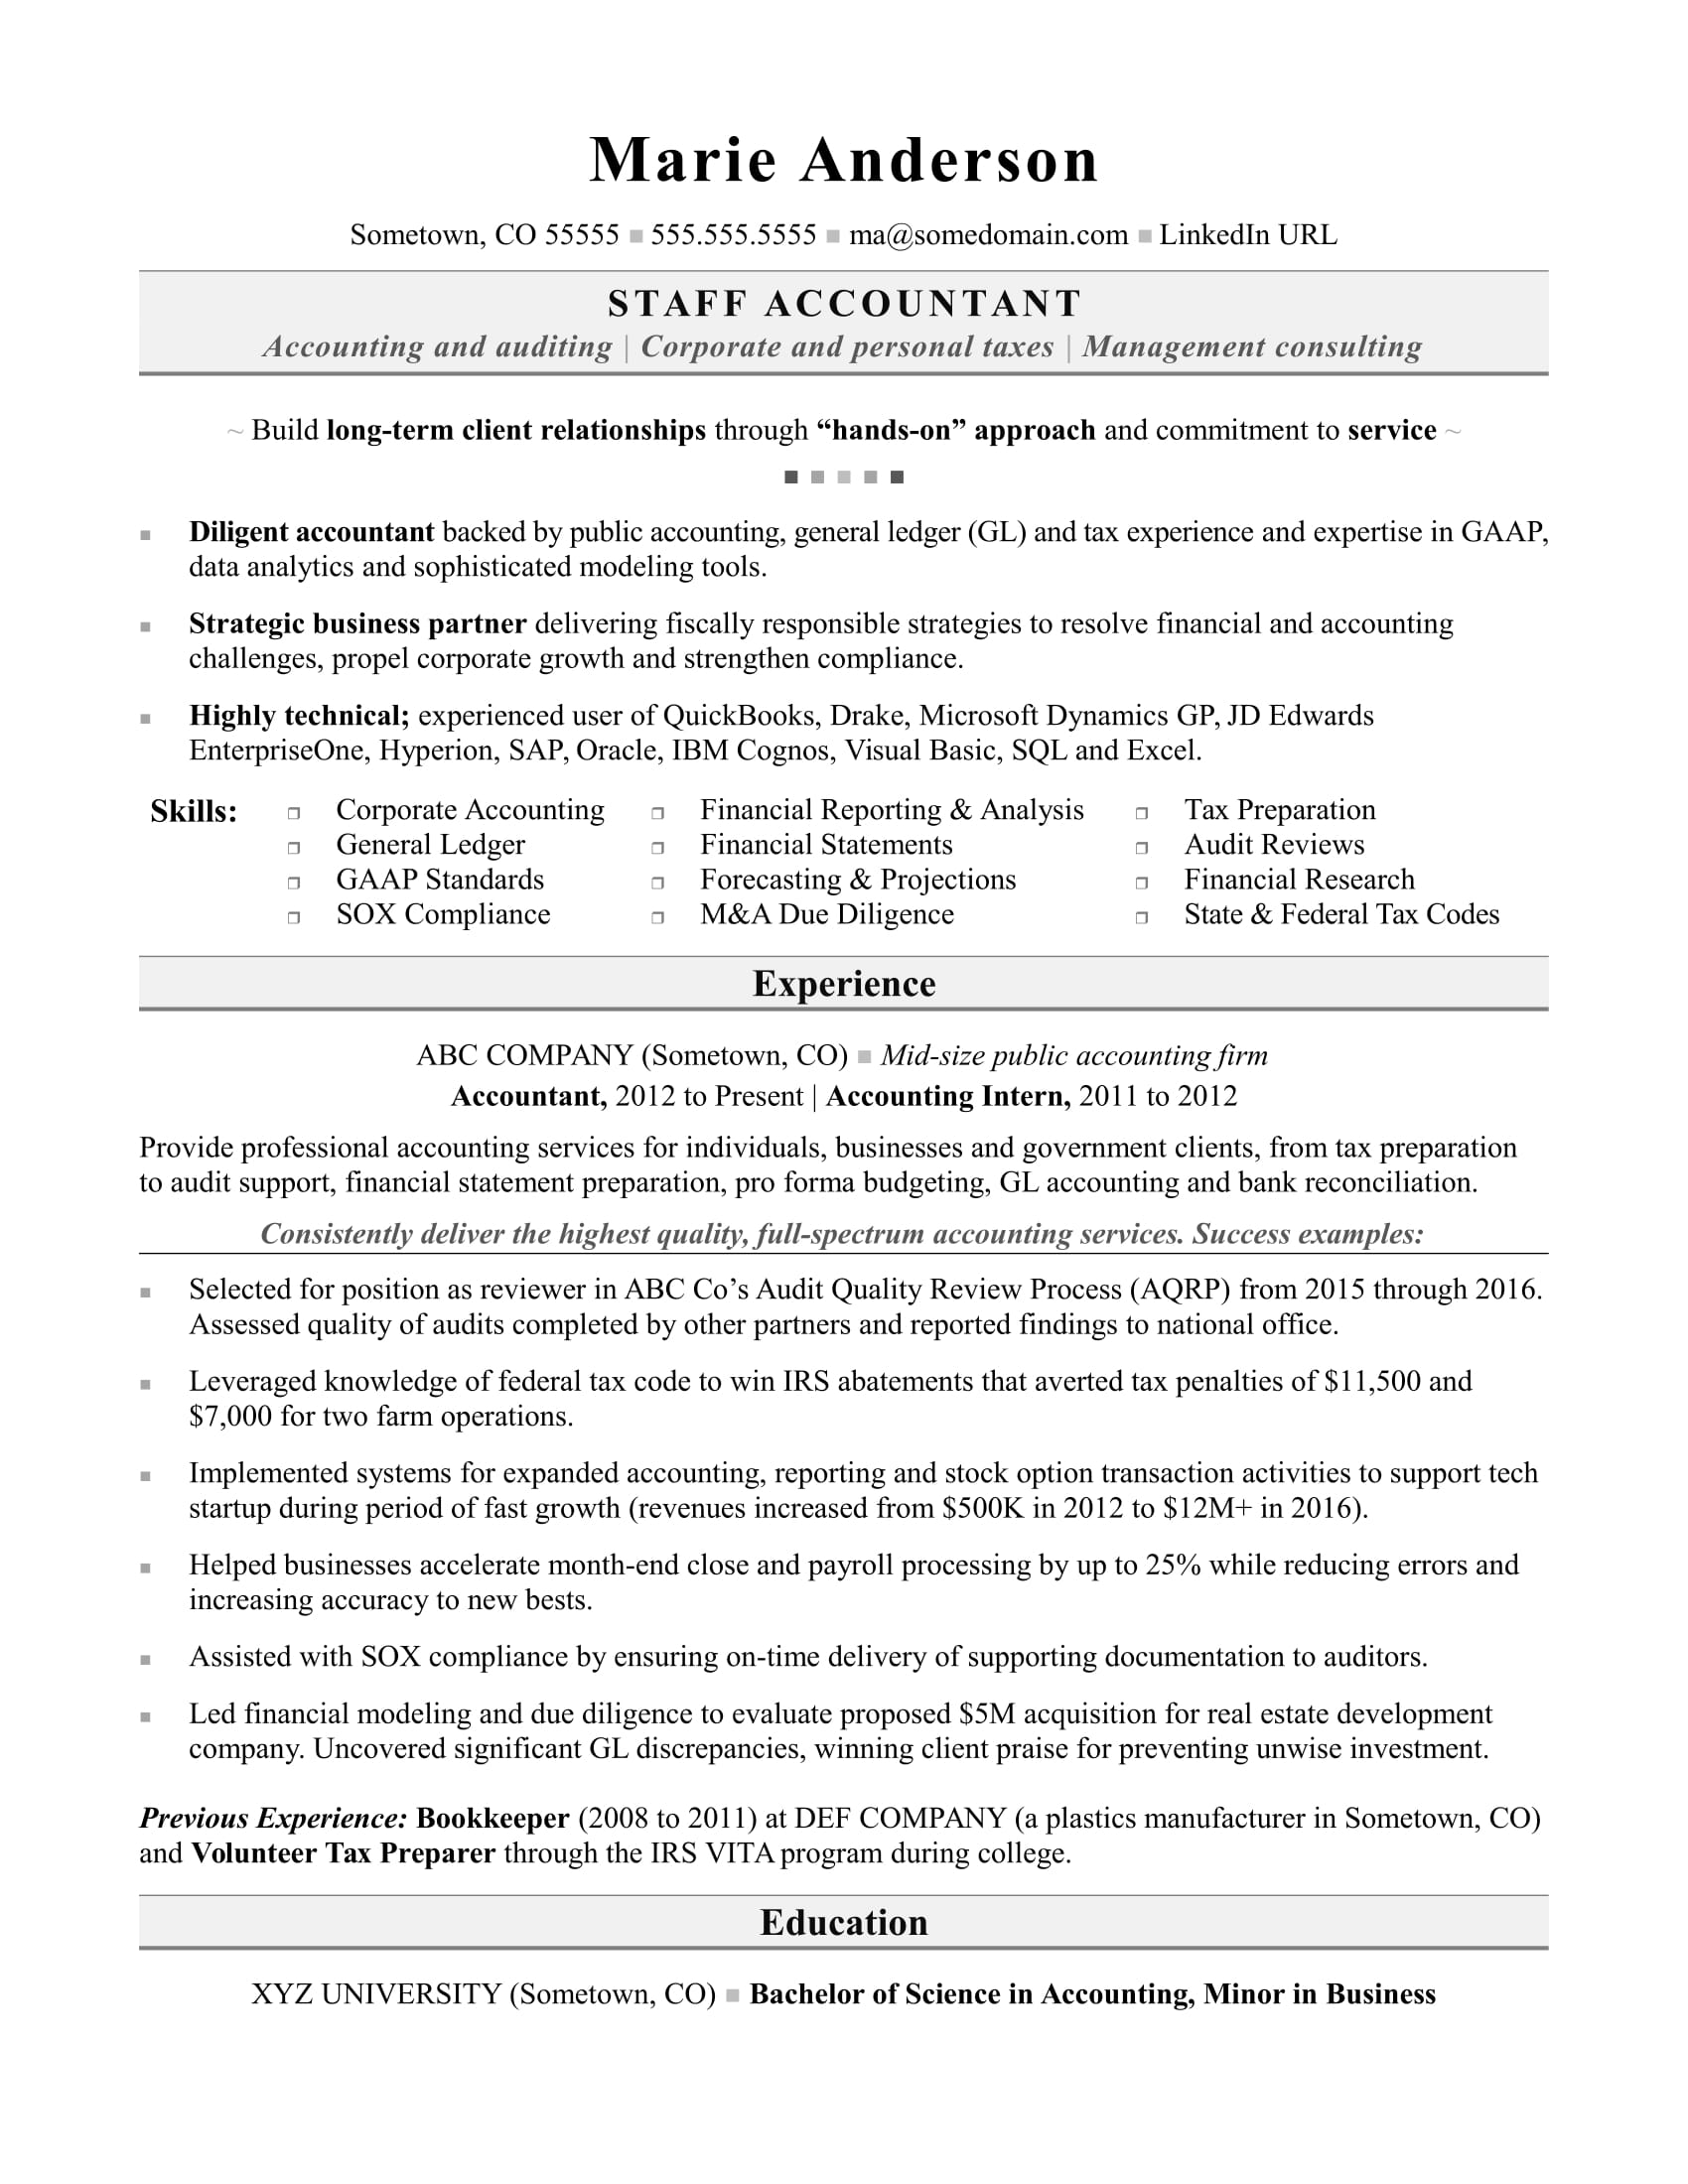 resume format for freshers for accountant